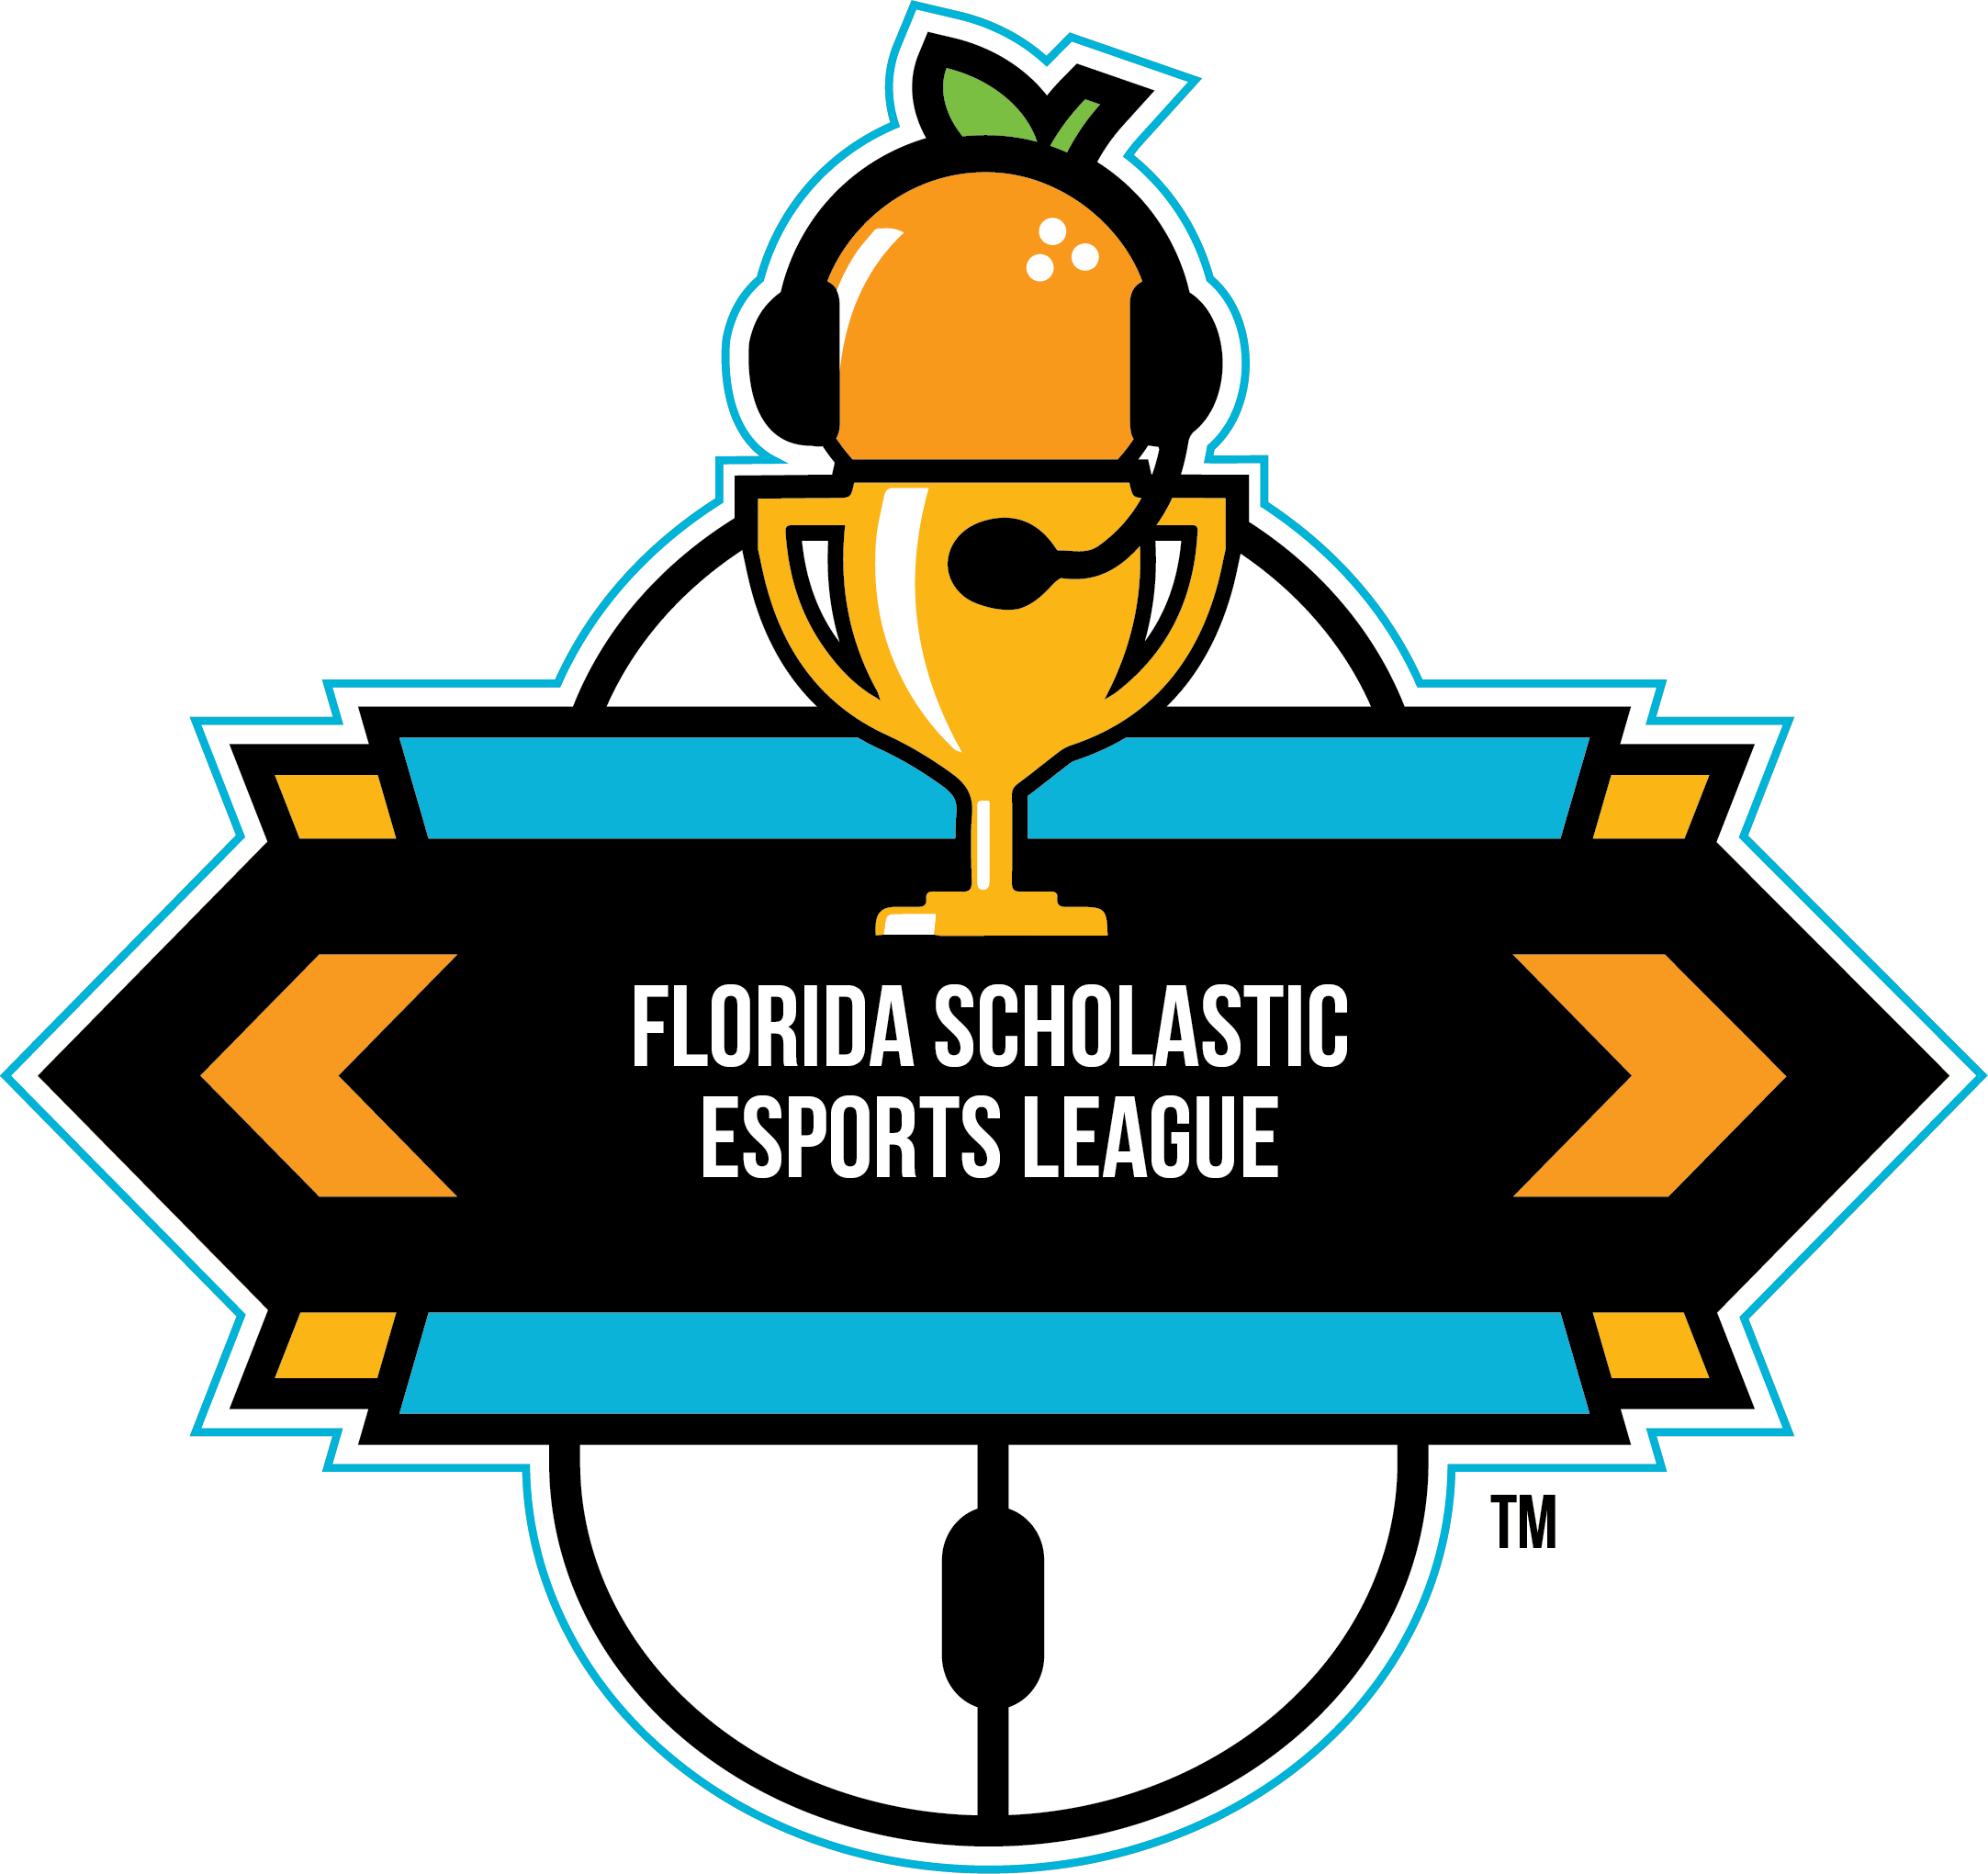 Florida Scholastic Esports League